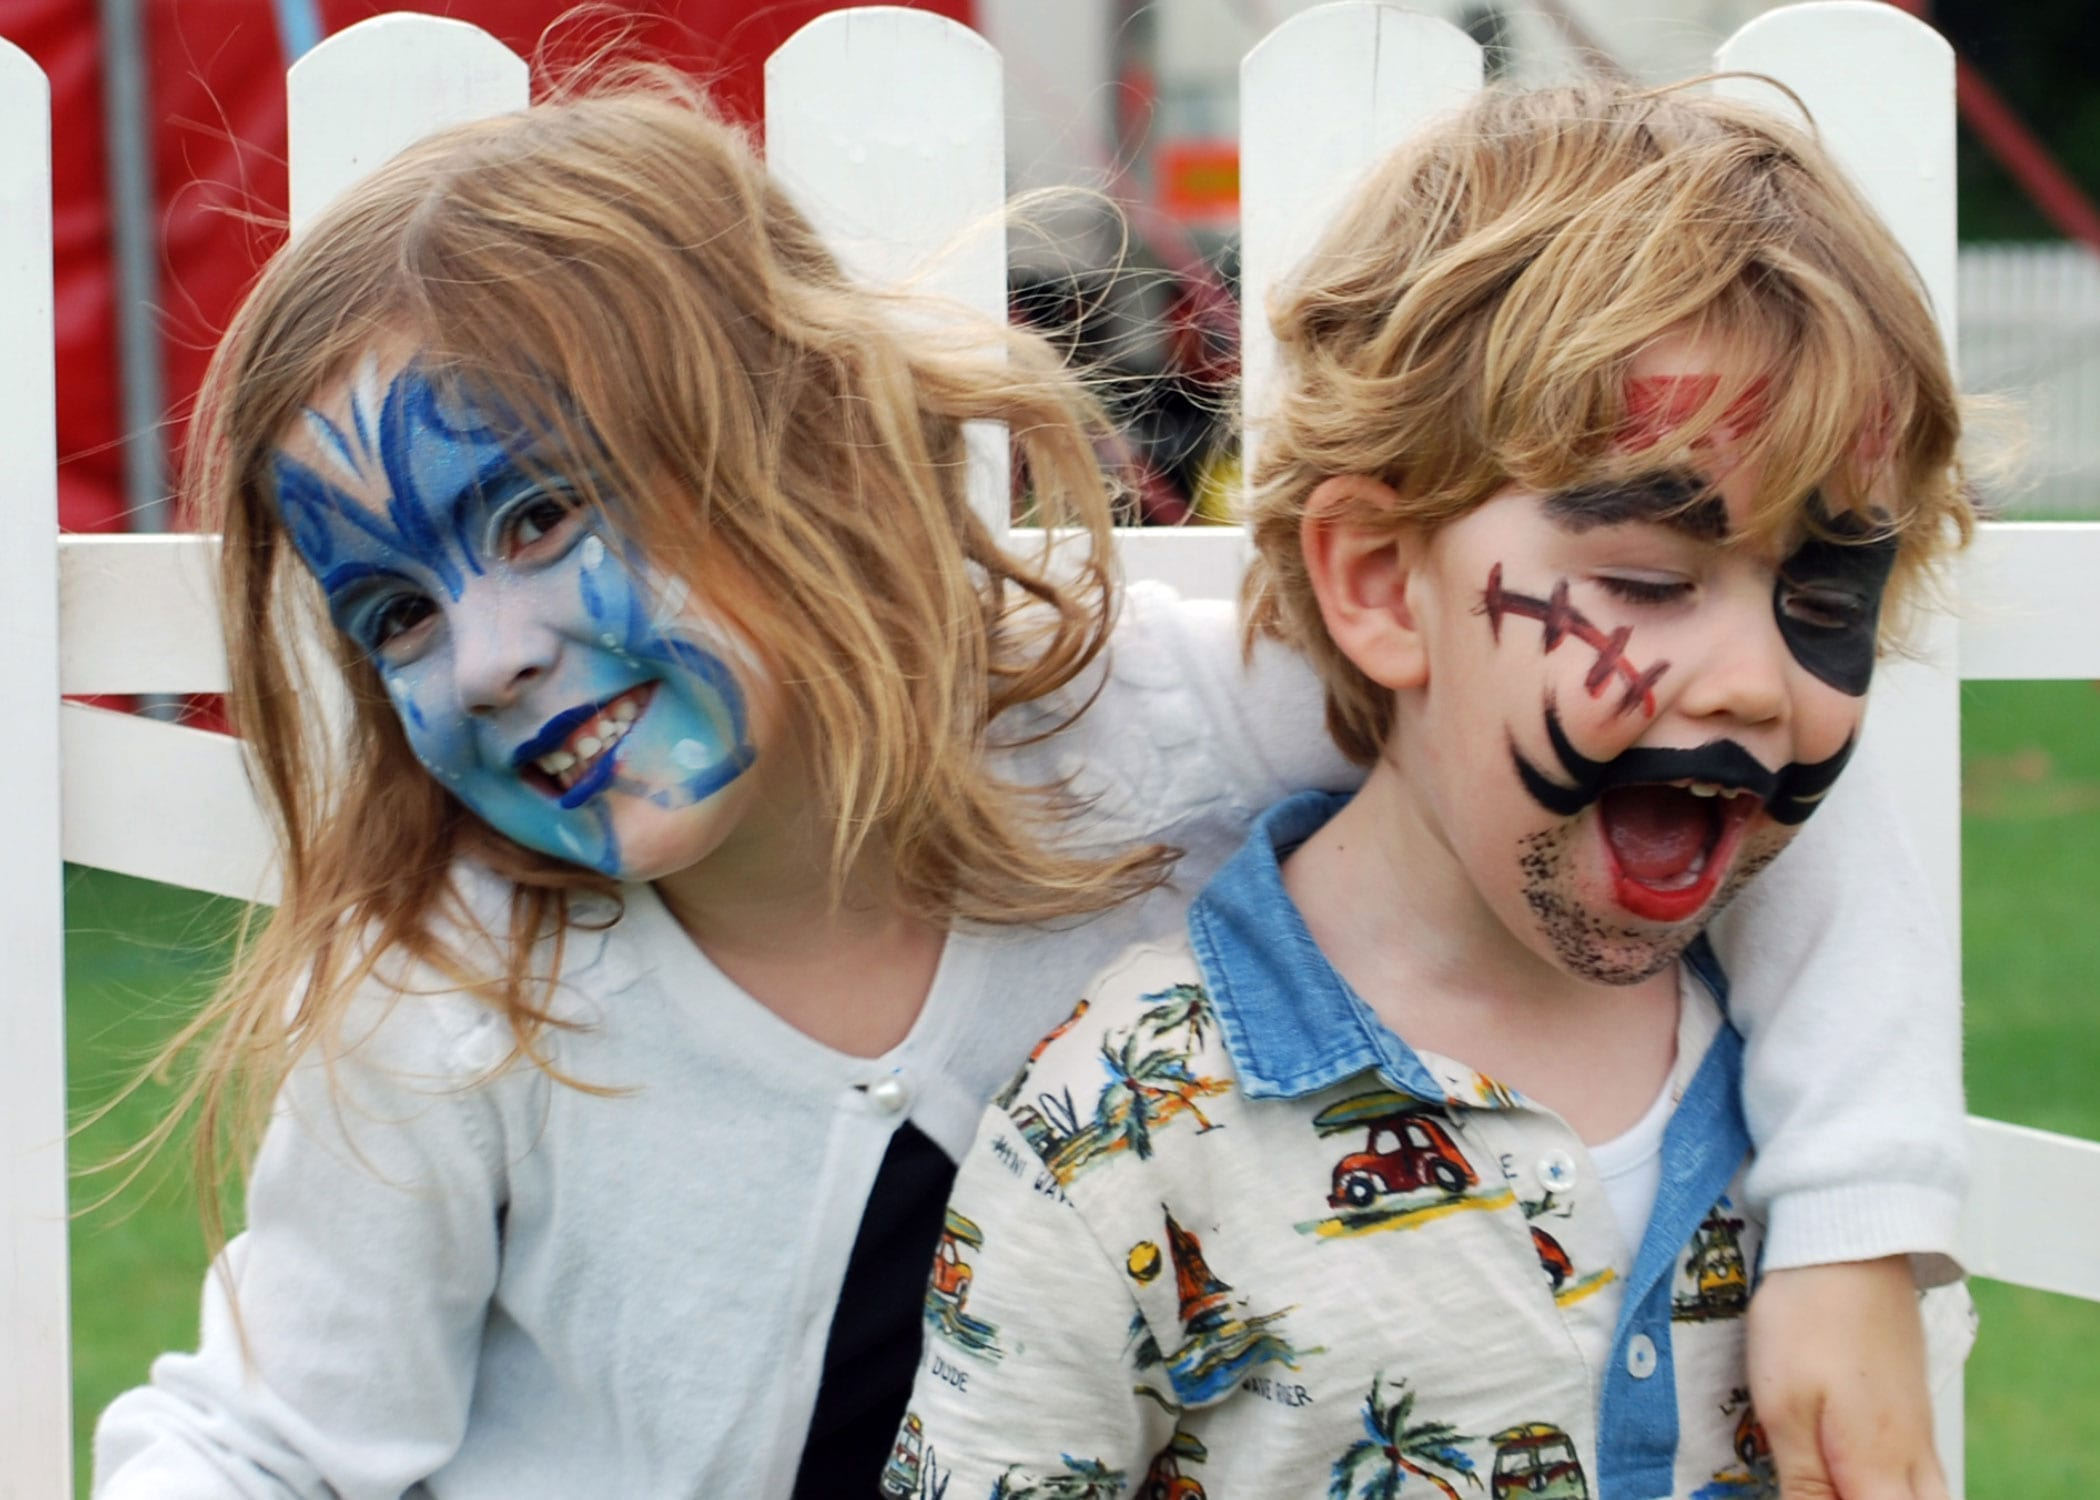 03-Face-painted-brother-and-sister